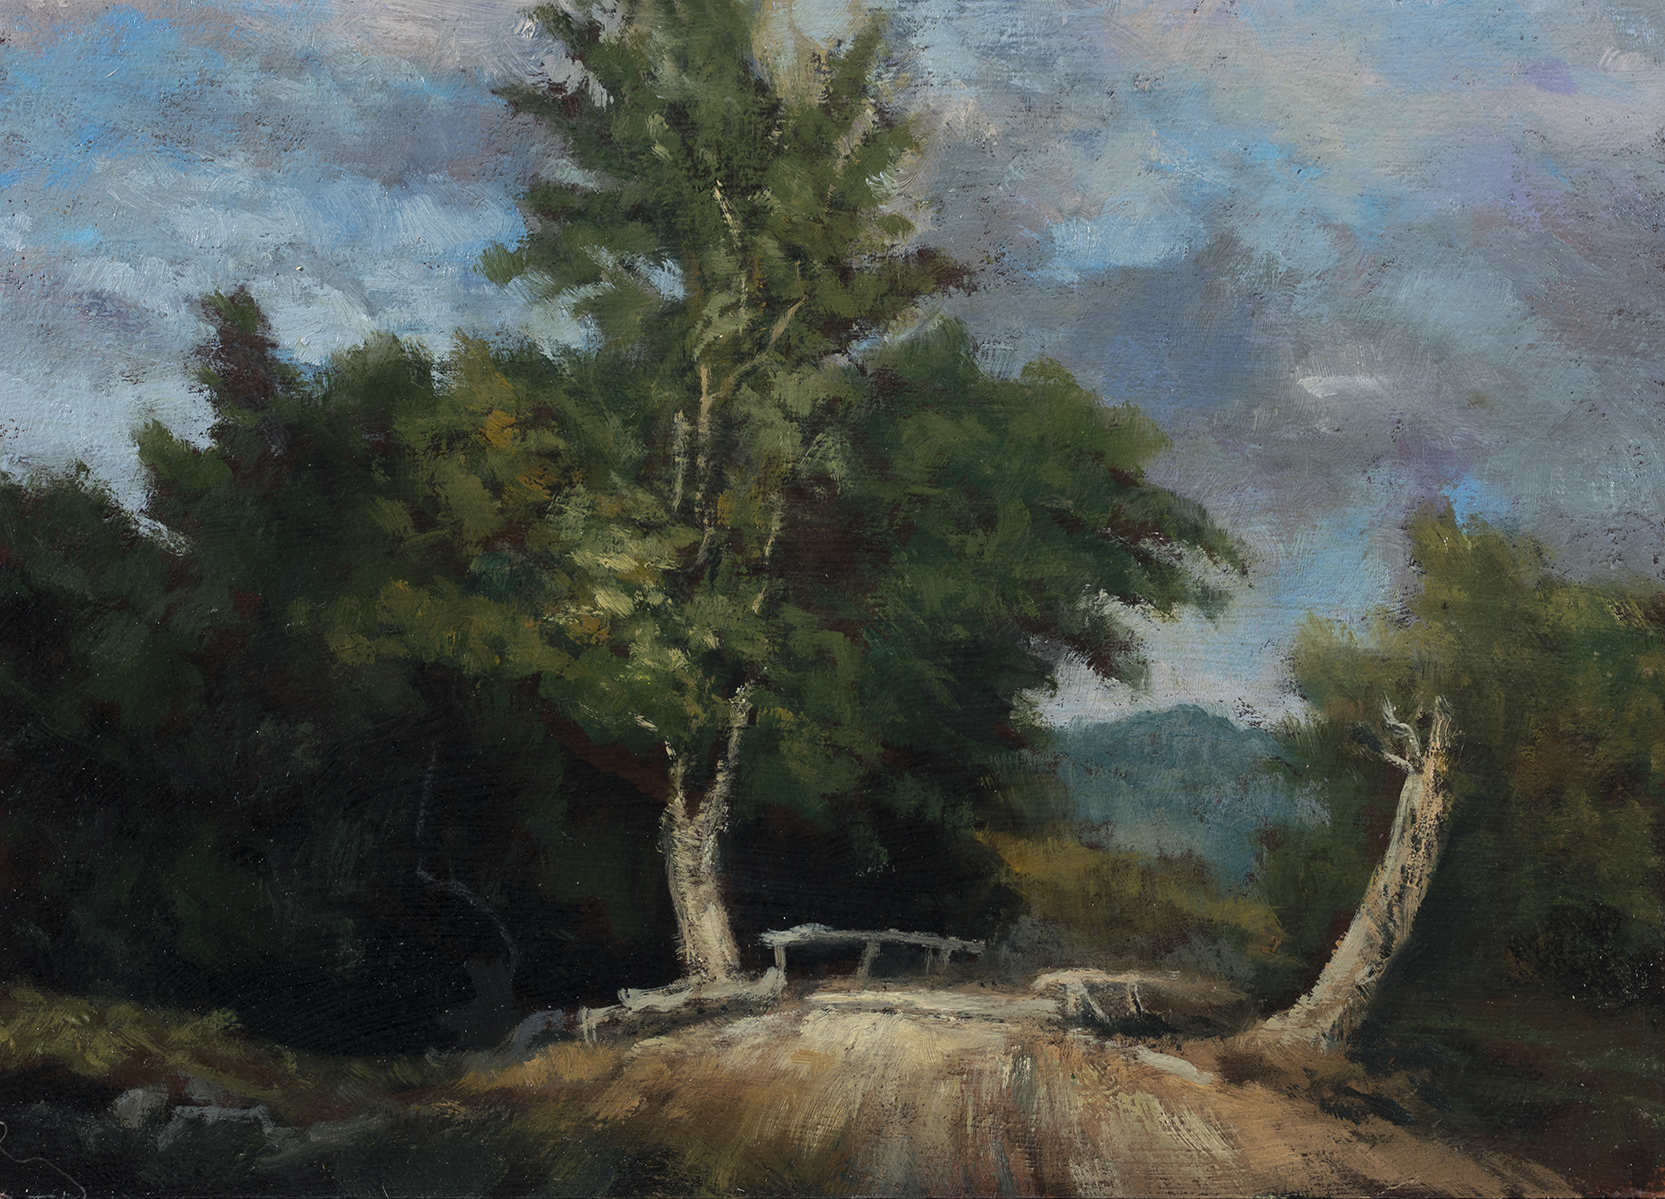 Study after:George Inness Landscape by M Francis McCarthy - 5x7 Oil on Wood Panel